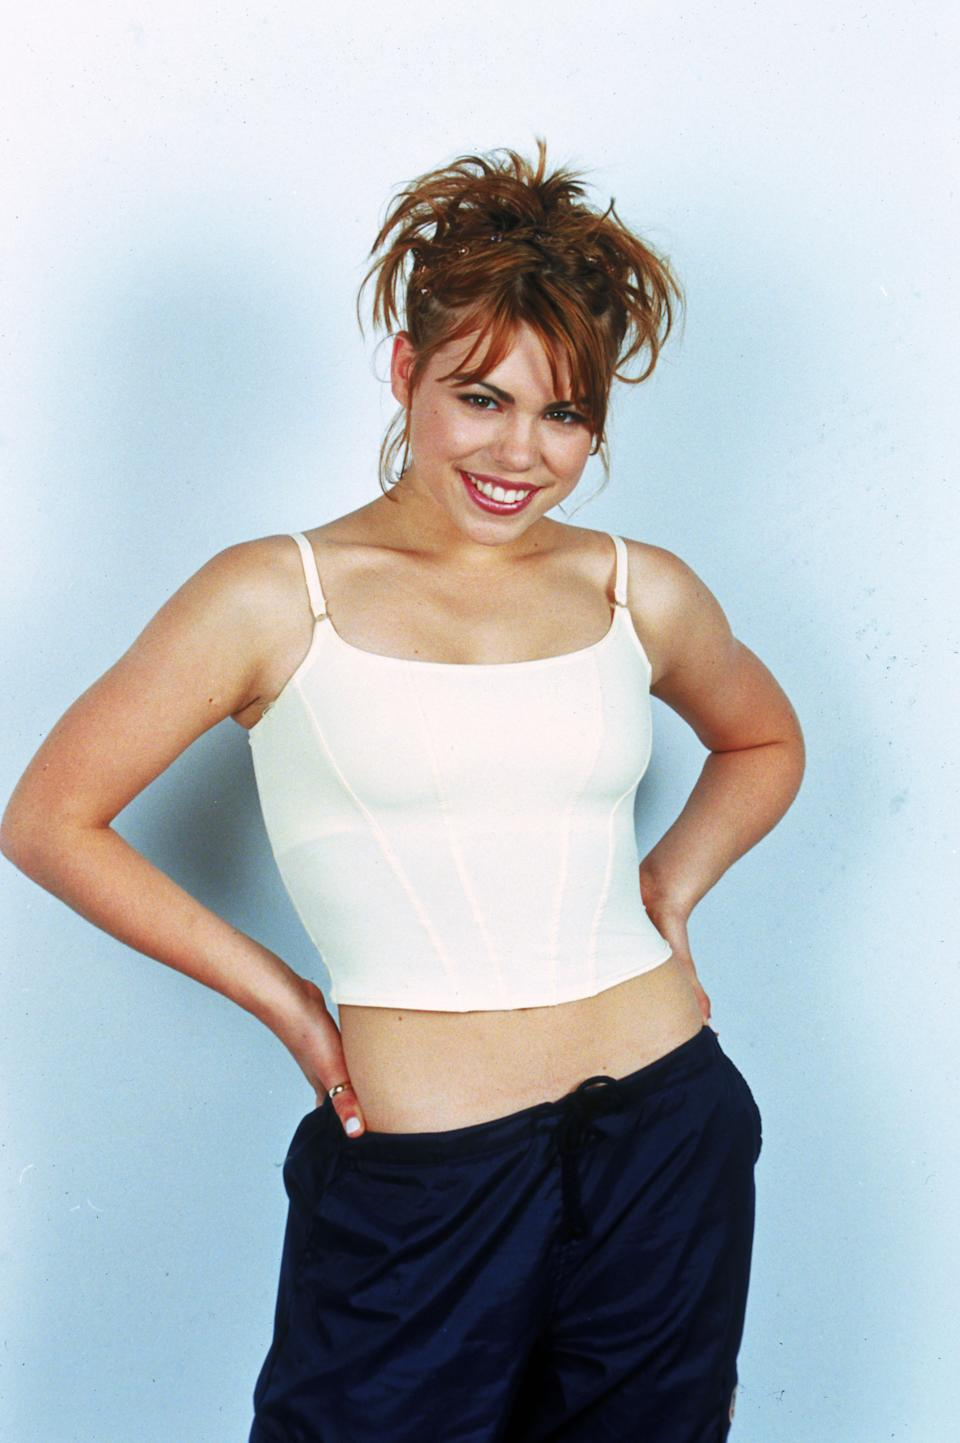 Teenage pop star Billie Piper, circa 1998. (Photo by Dave Hogan/Hulton Archive/Getty Images)